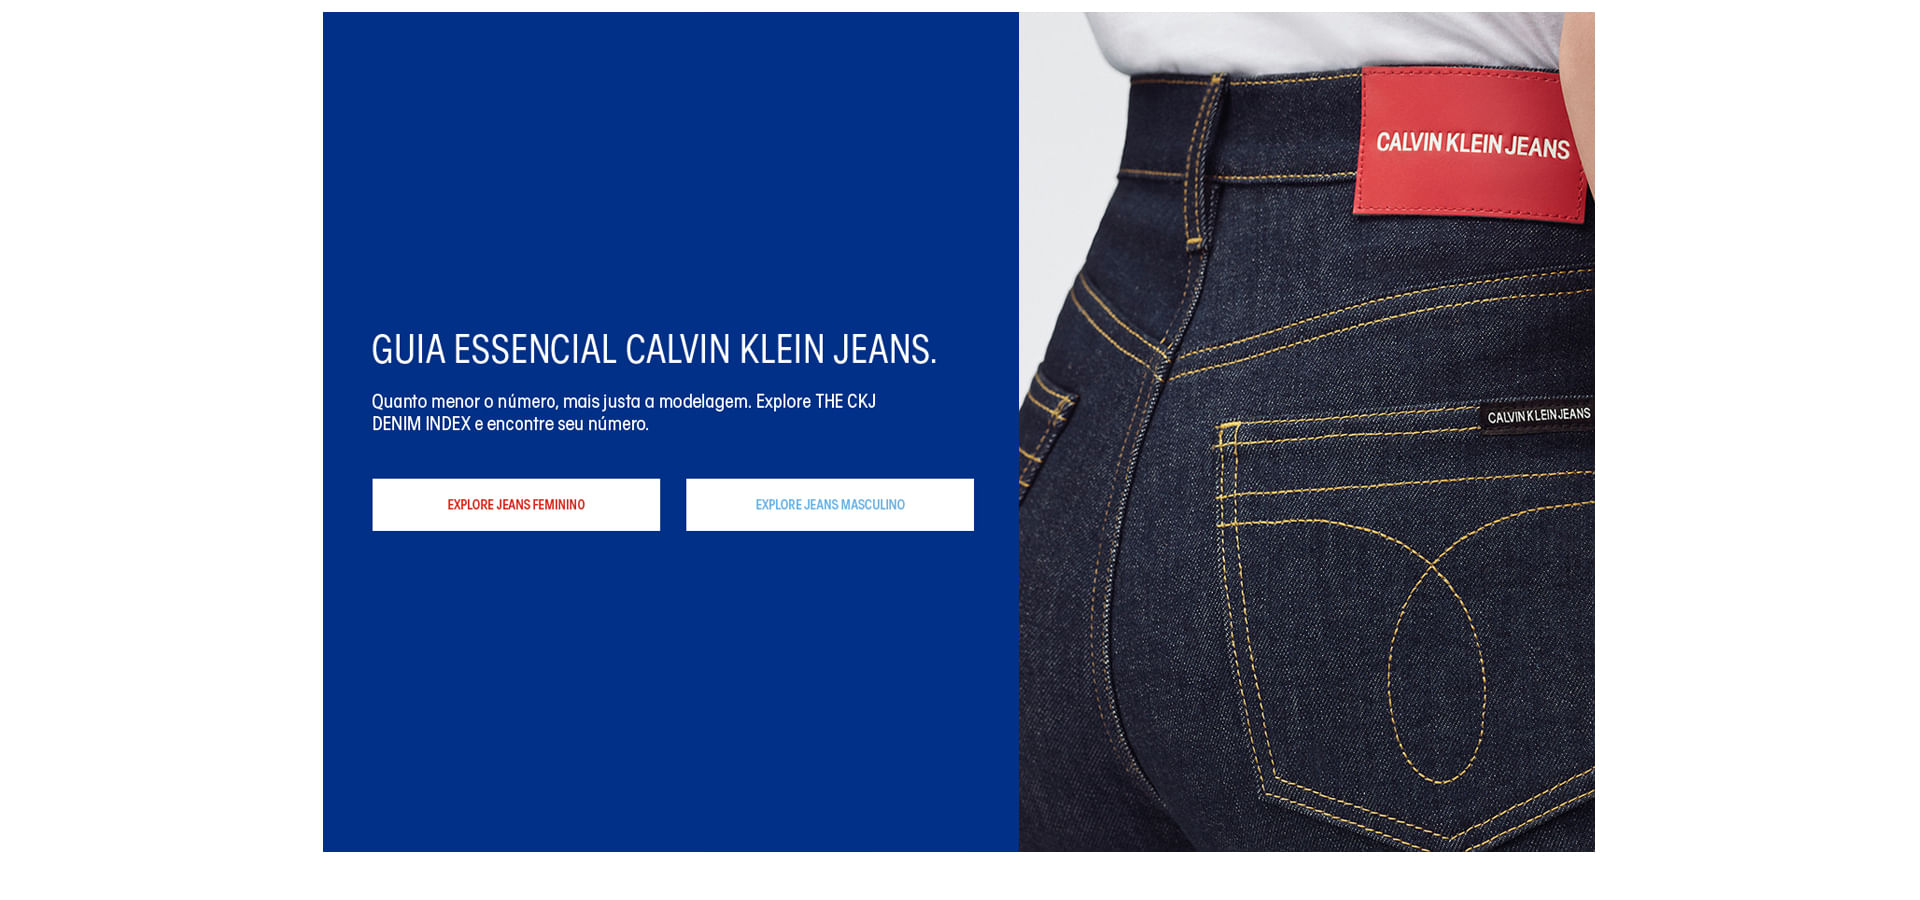 Guia Essencial Calvin Klein Jeans. Quanto menor o número, mais justa a modelagem. Explore THE CKJ DENIM INDEX e encontre seu número.